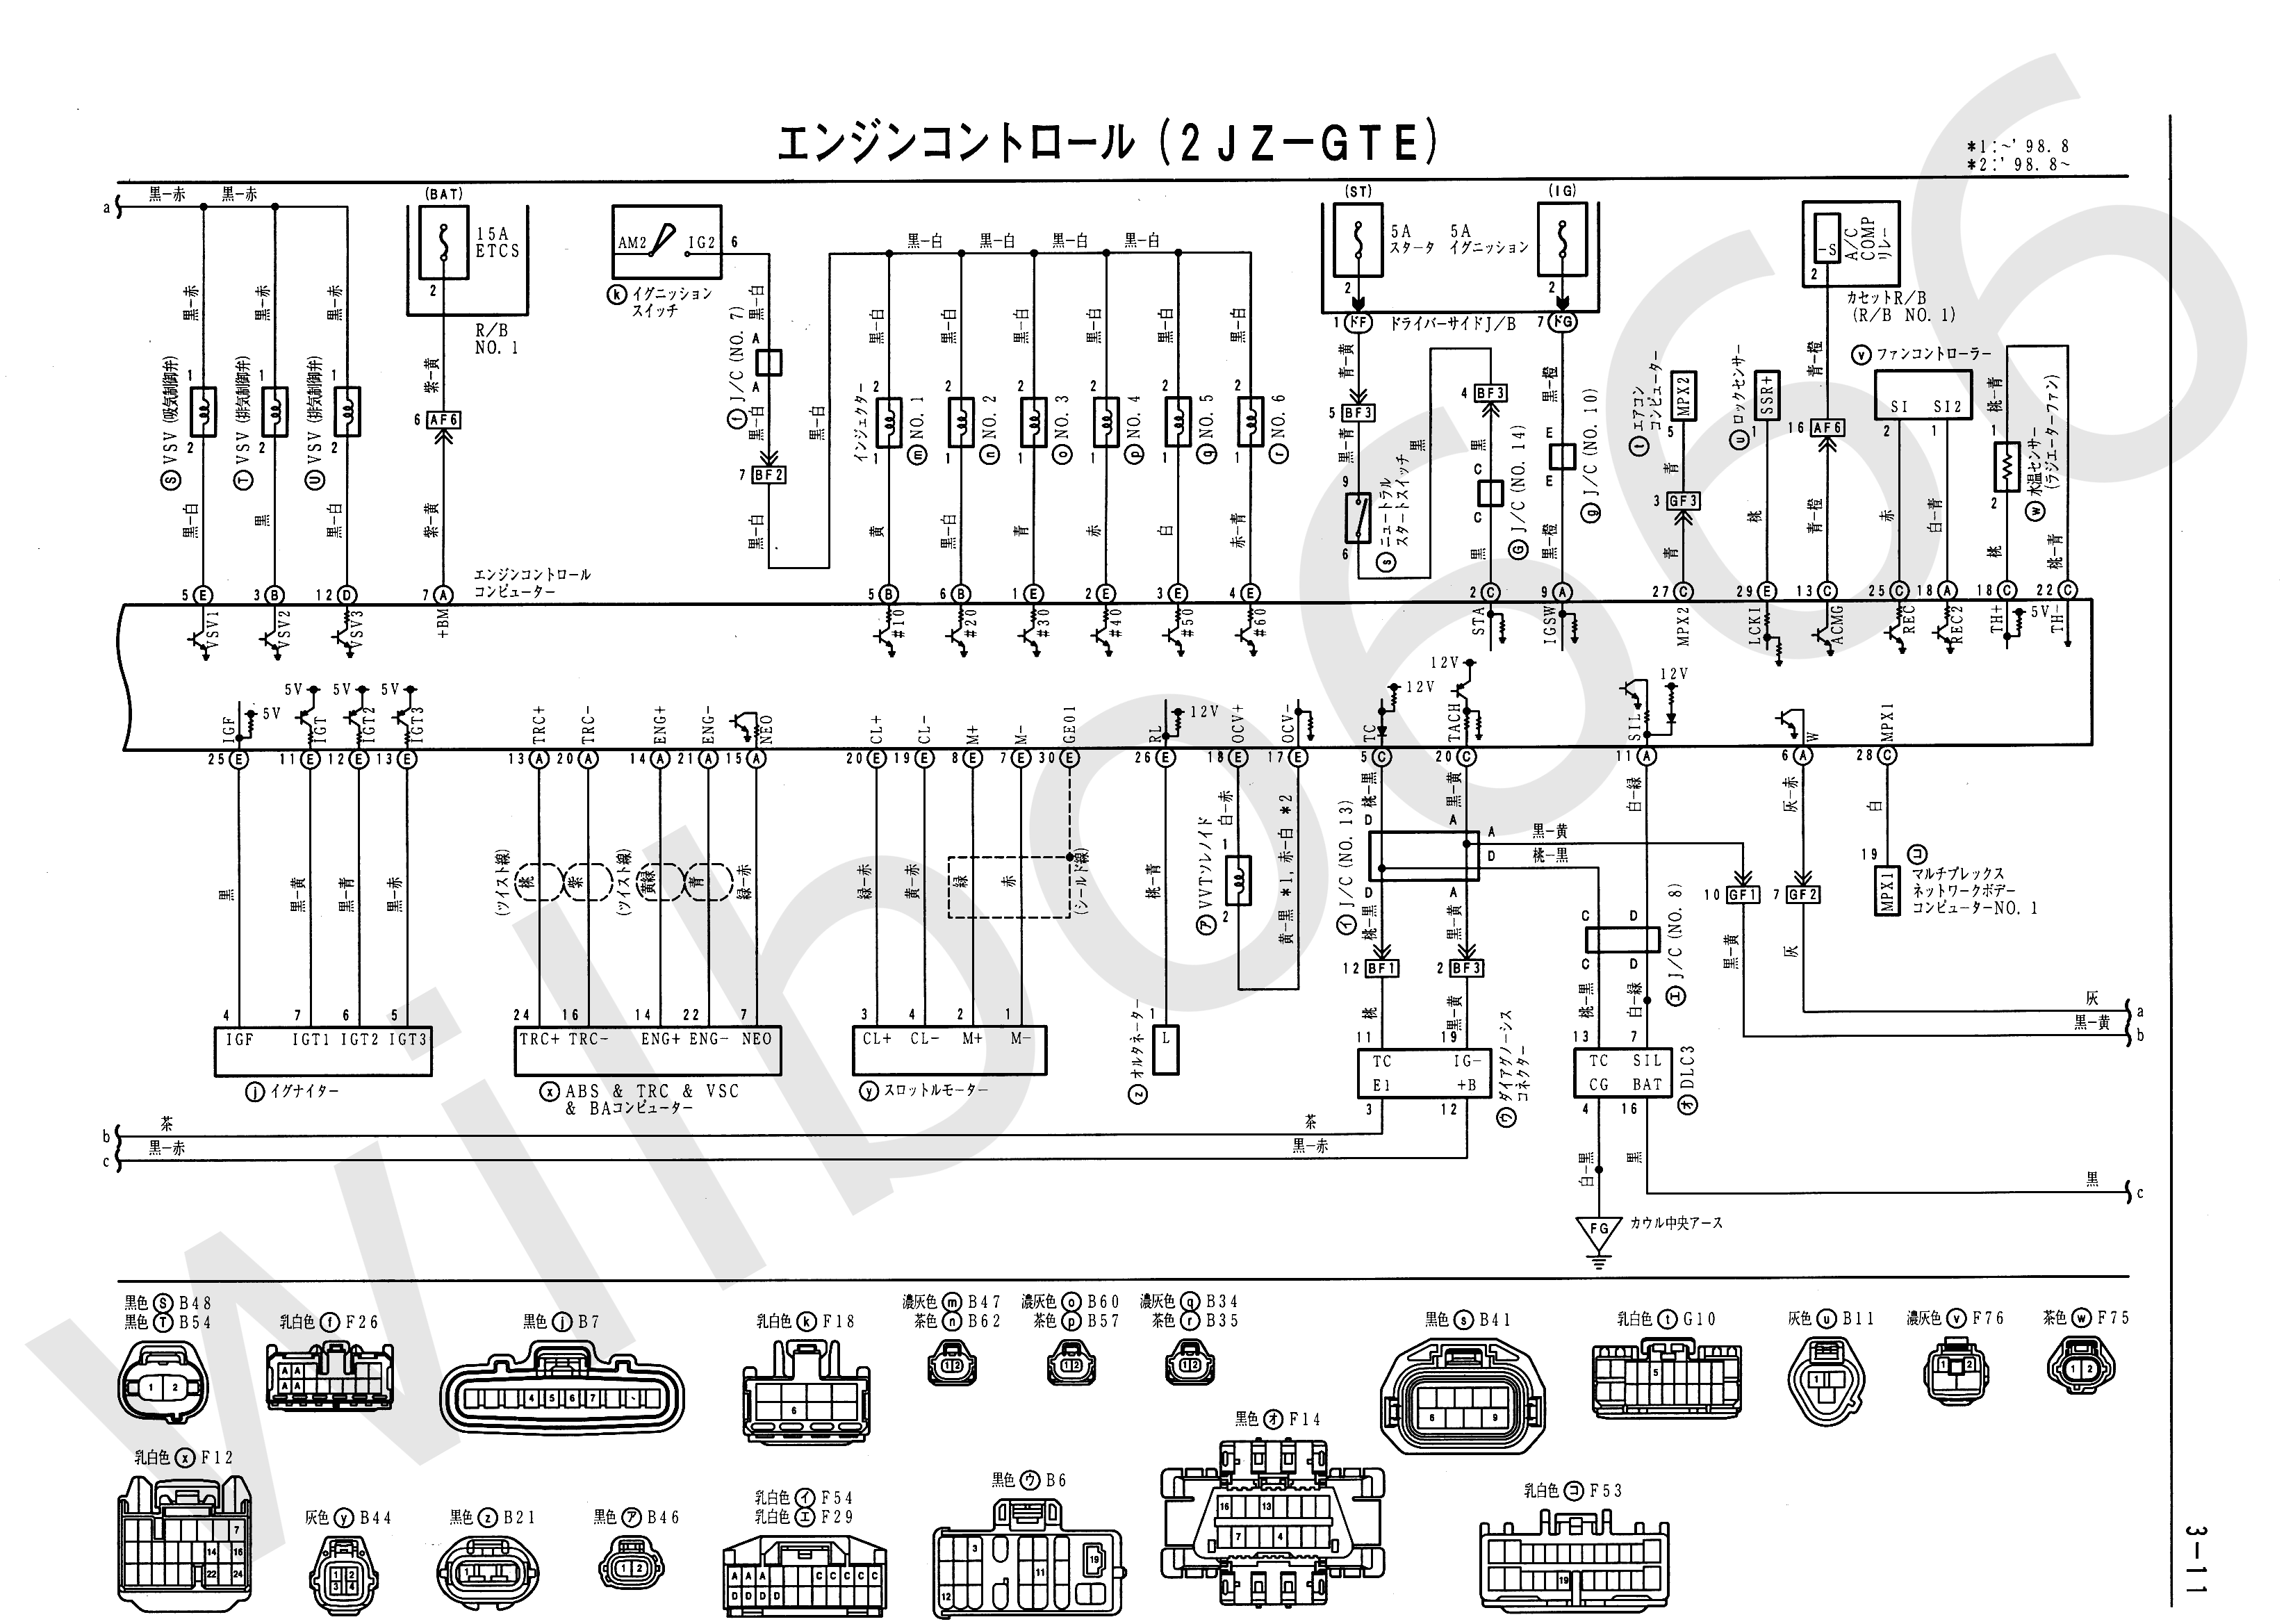 JZS161 Electrical Wiring Diagram 6748505 3 11 2jz wiring diagram basic home electrical wiring diagrams \u2022 wiring 1jz wiring harness for 240sx at soozxer.org